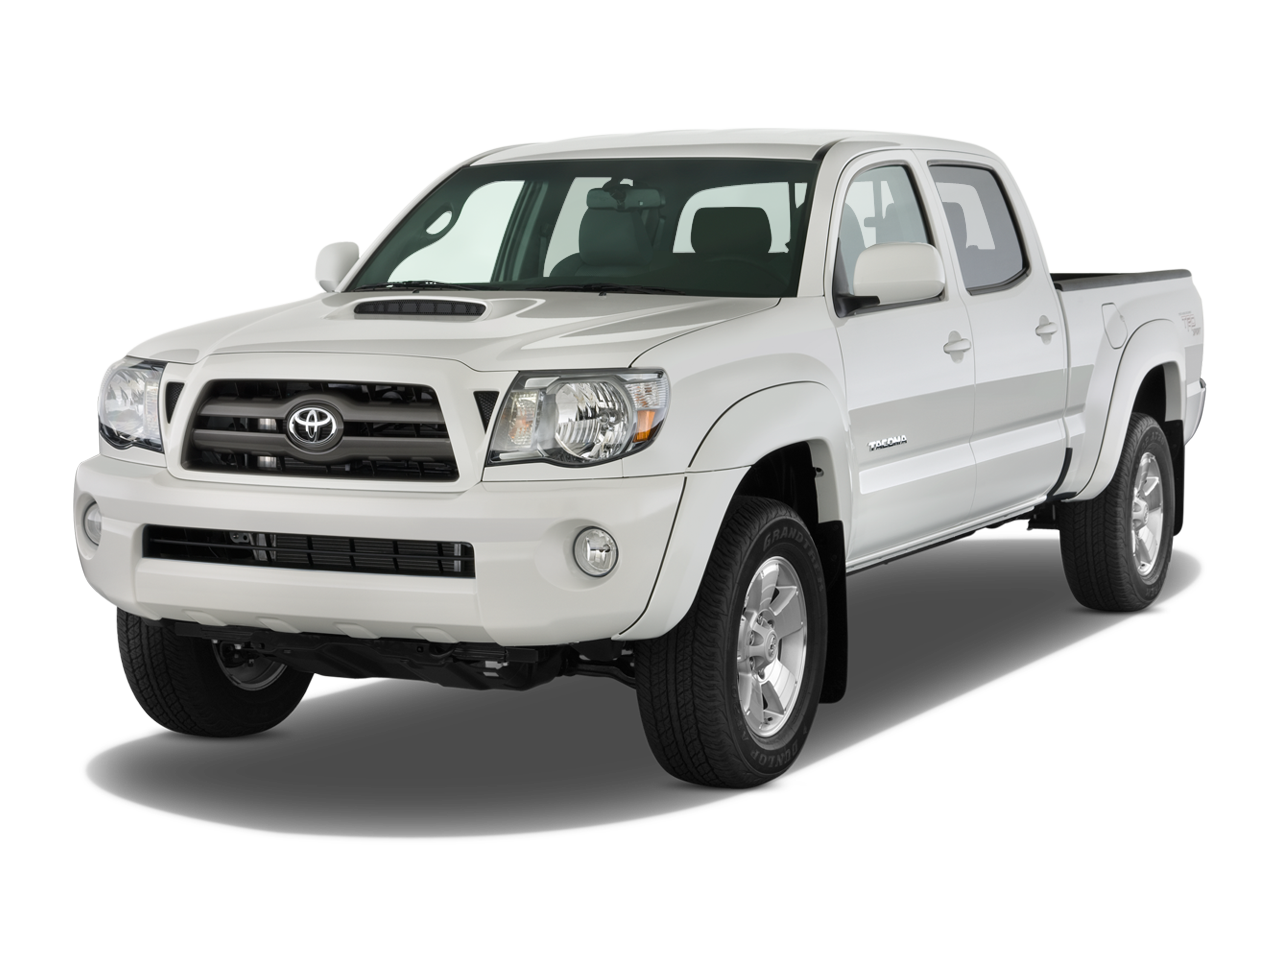 2009 toyota tacoma prerunner double cab v6 5at long bed specs and features msn autos. Black Bedroom Furniture Sets. Home Design Ideas